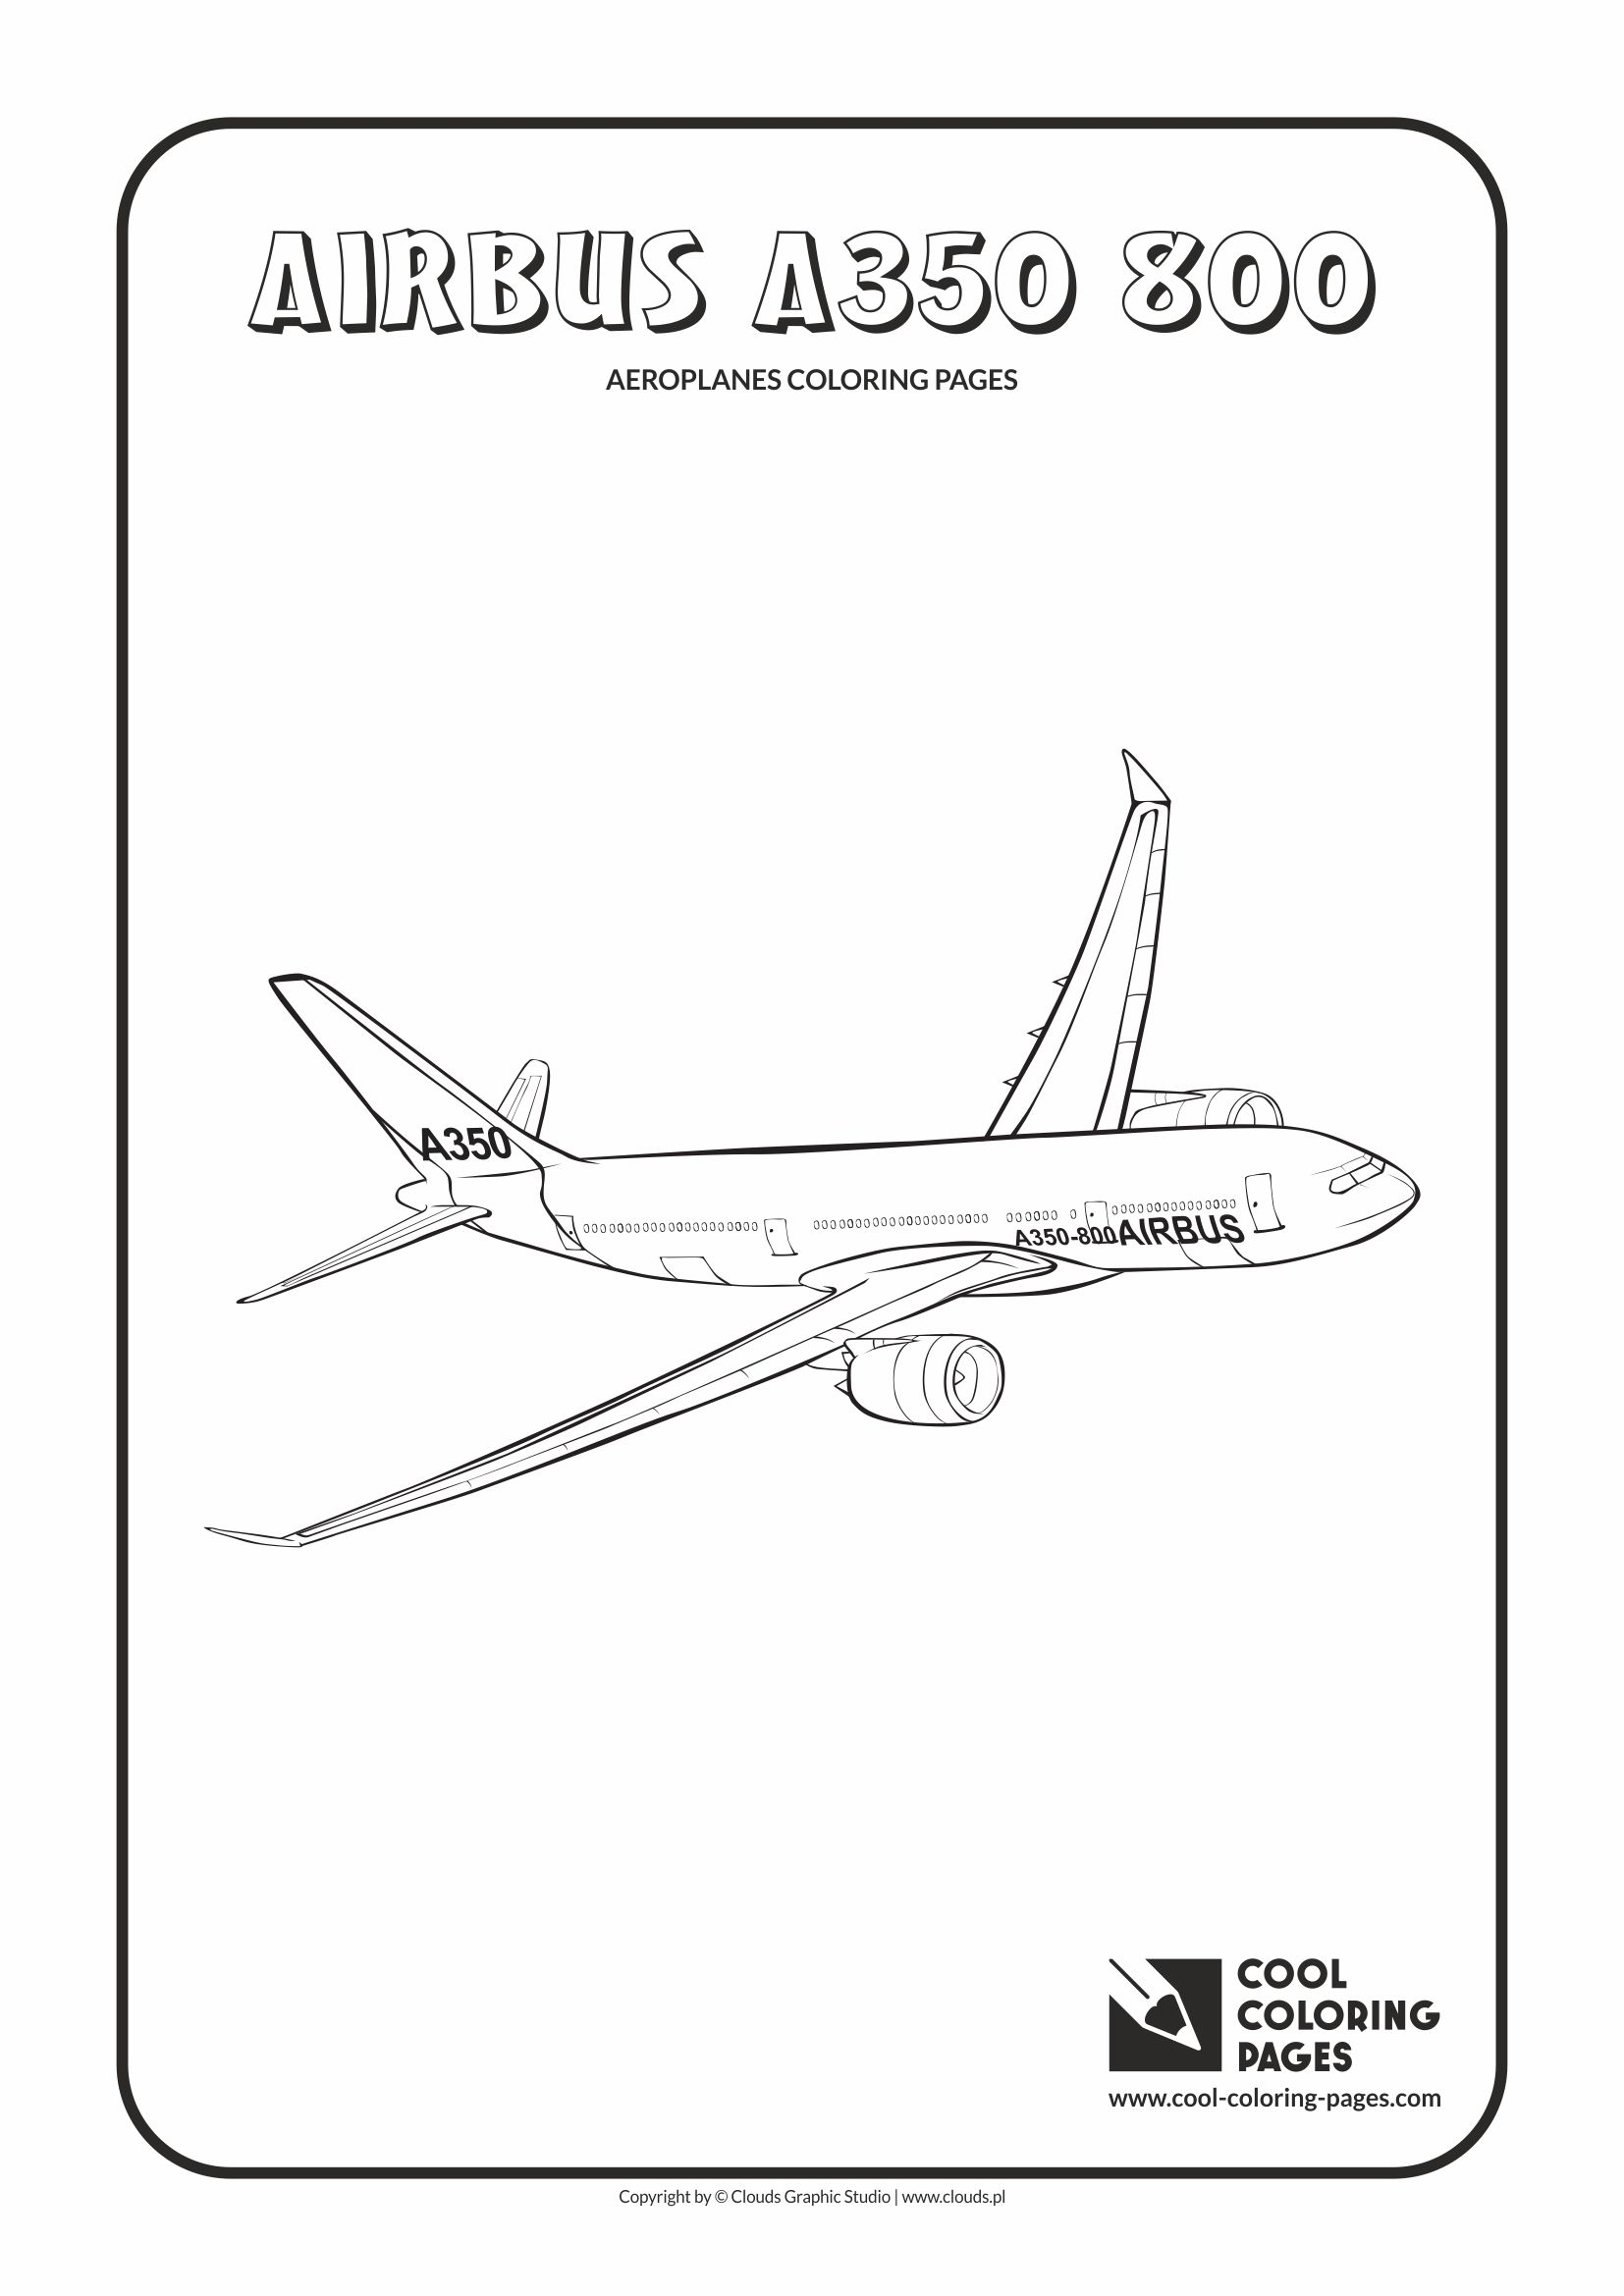 Cool Coloring Pages - Vehicles / Airbus A350 800 / Coloring page with Airbus A350 800